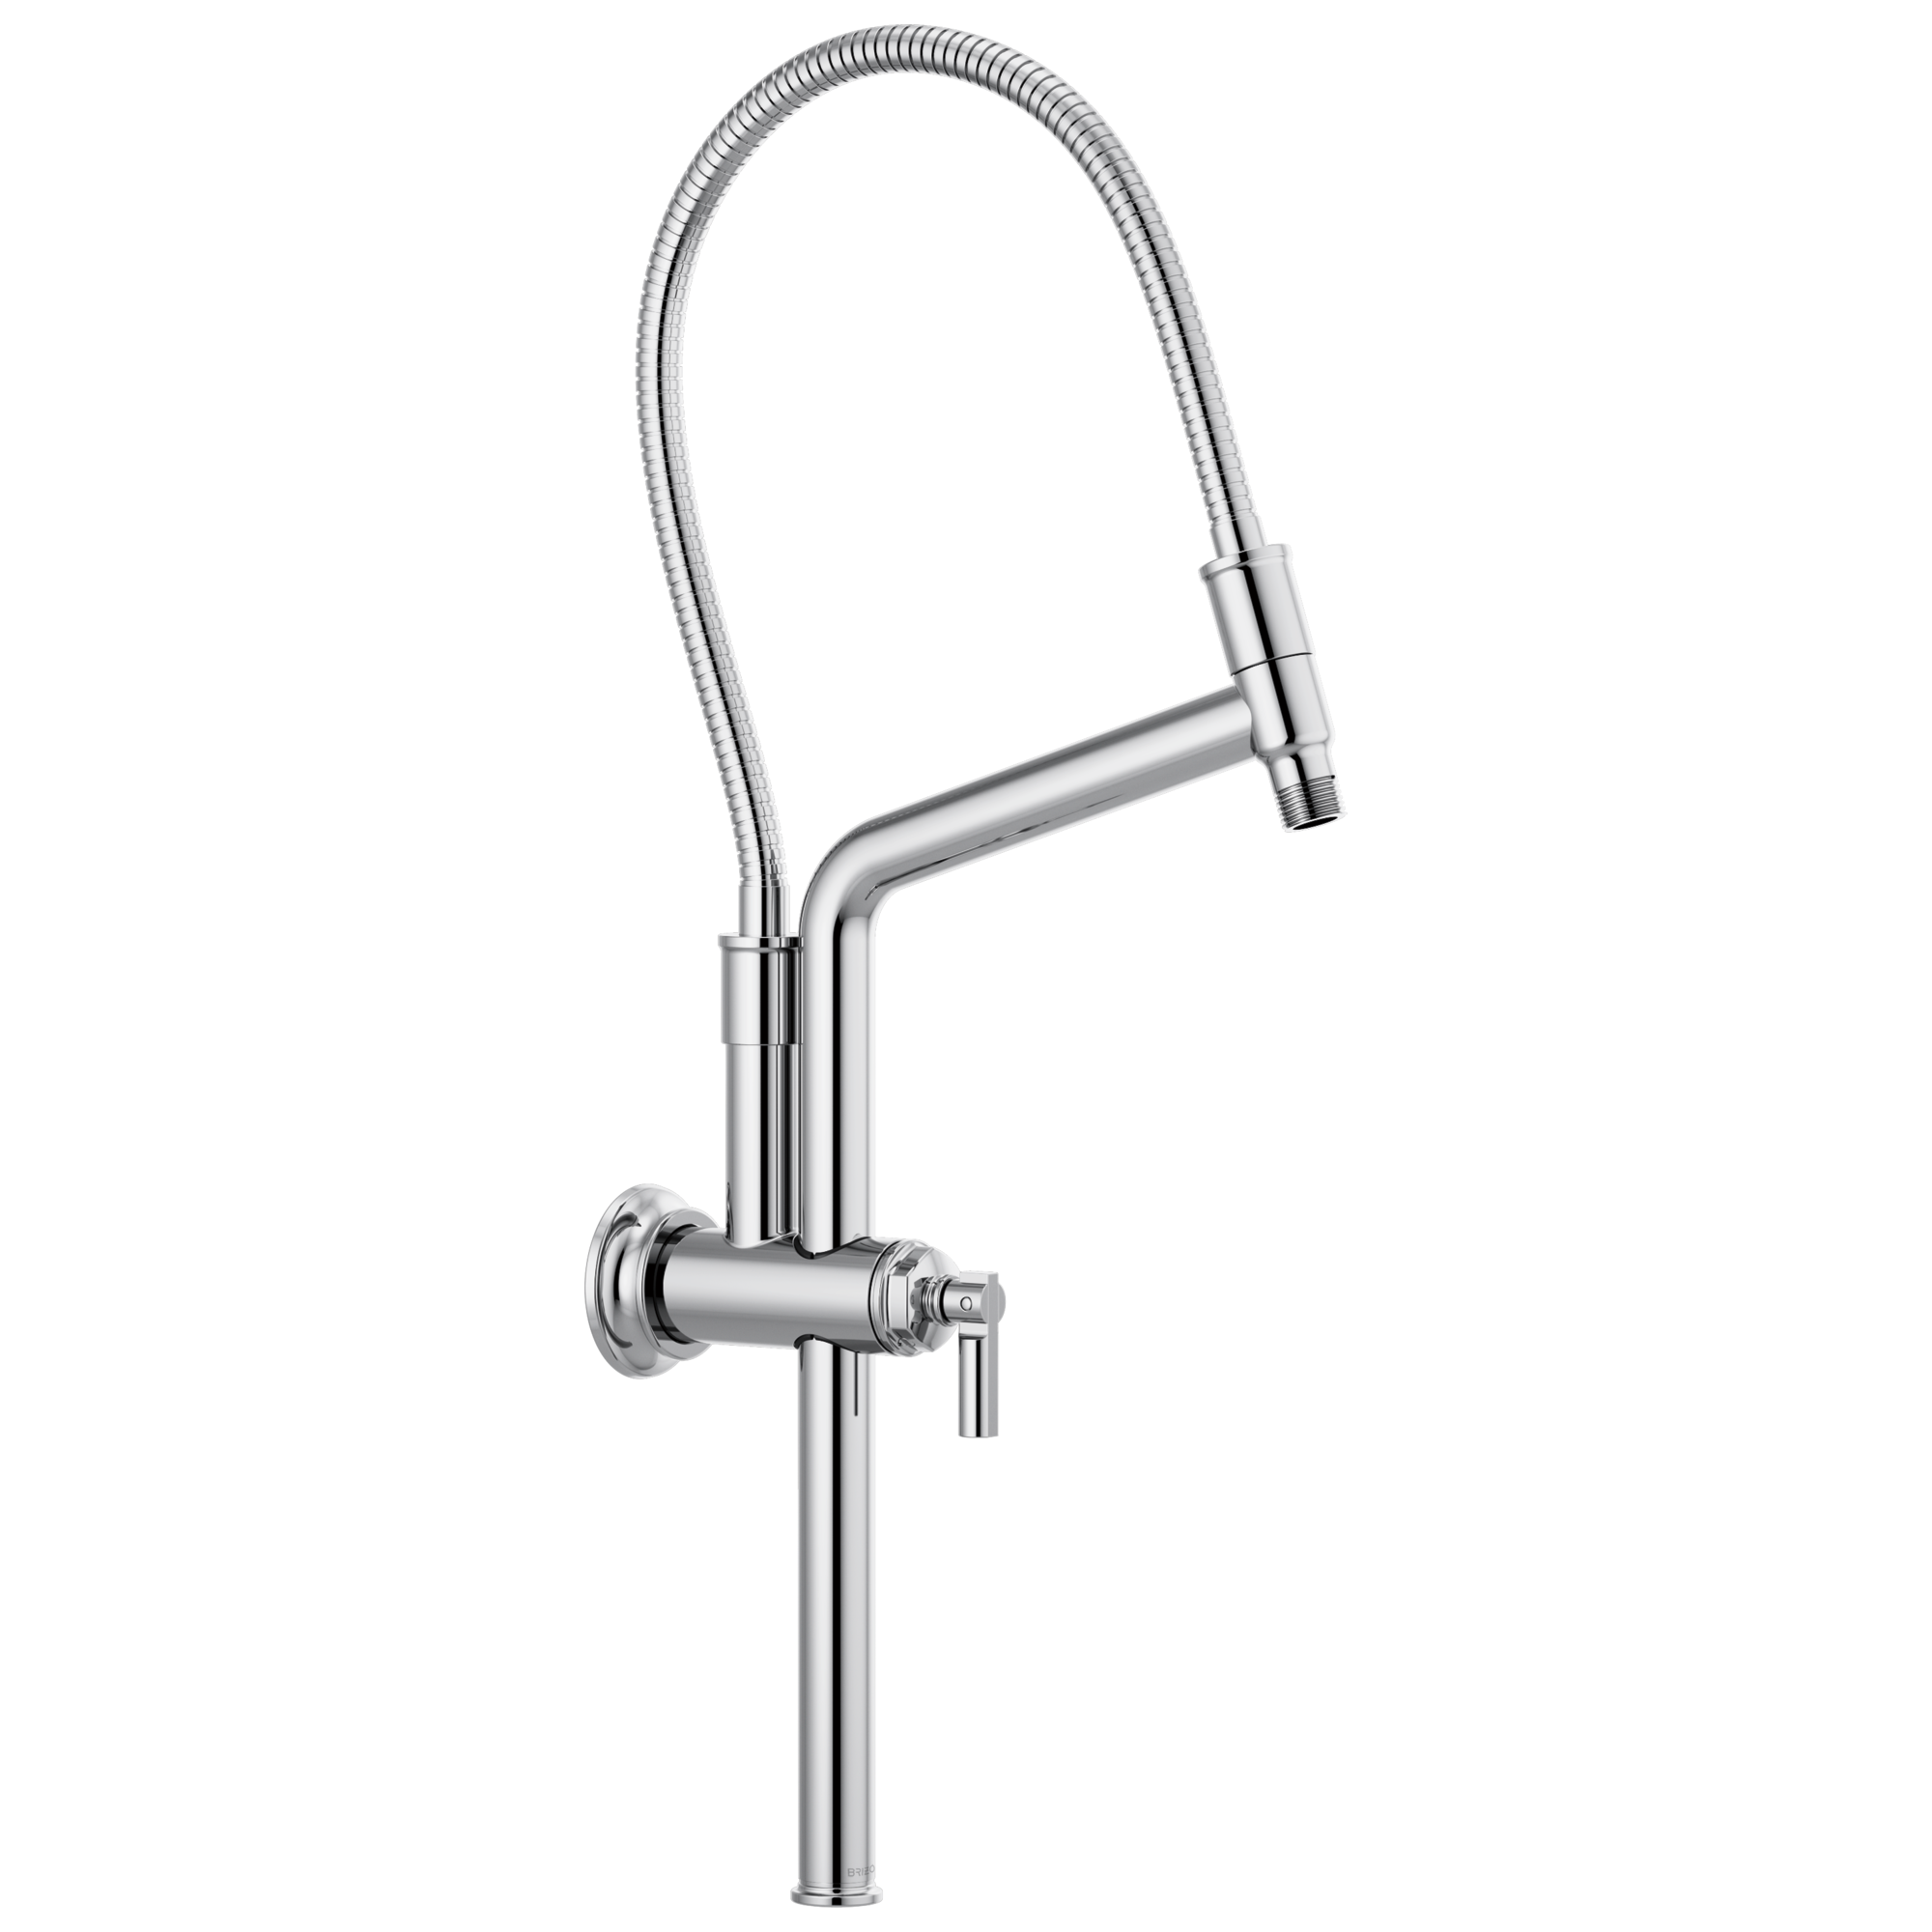 "Brizo 81376-PC Brizo Invari: 10 7/16"" Slide Bar Shower Arm And Flange - Chrome"